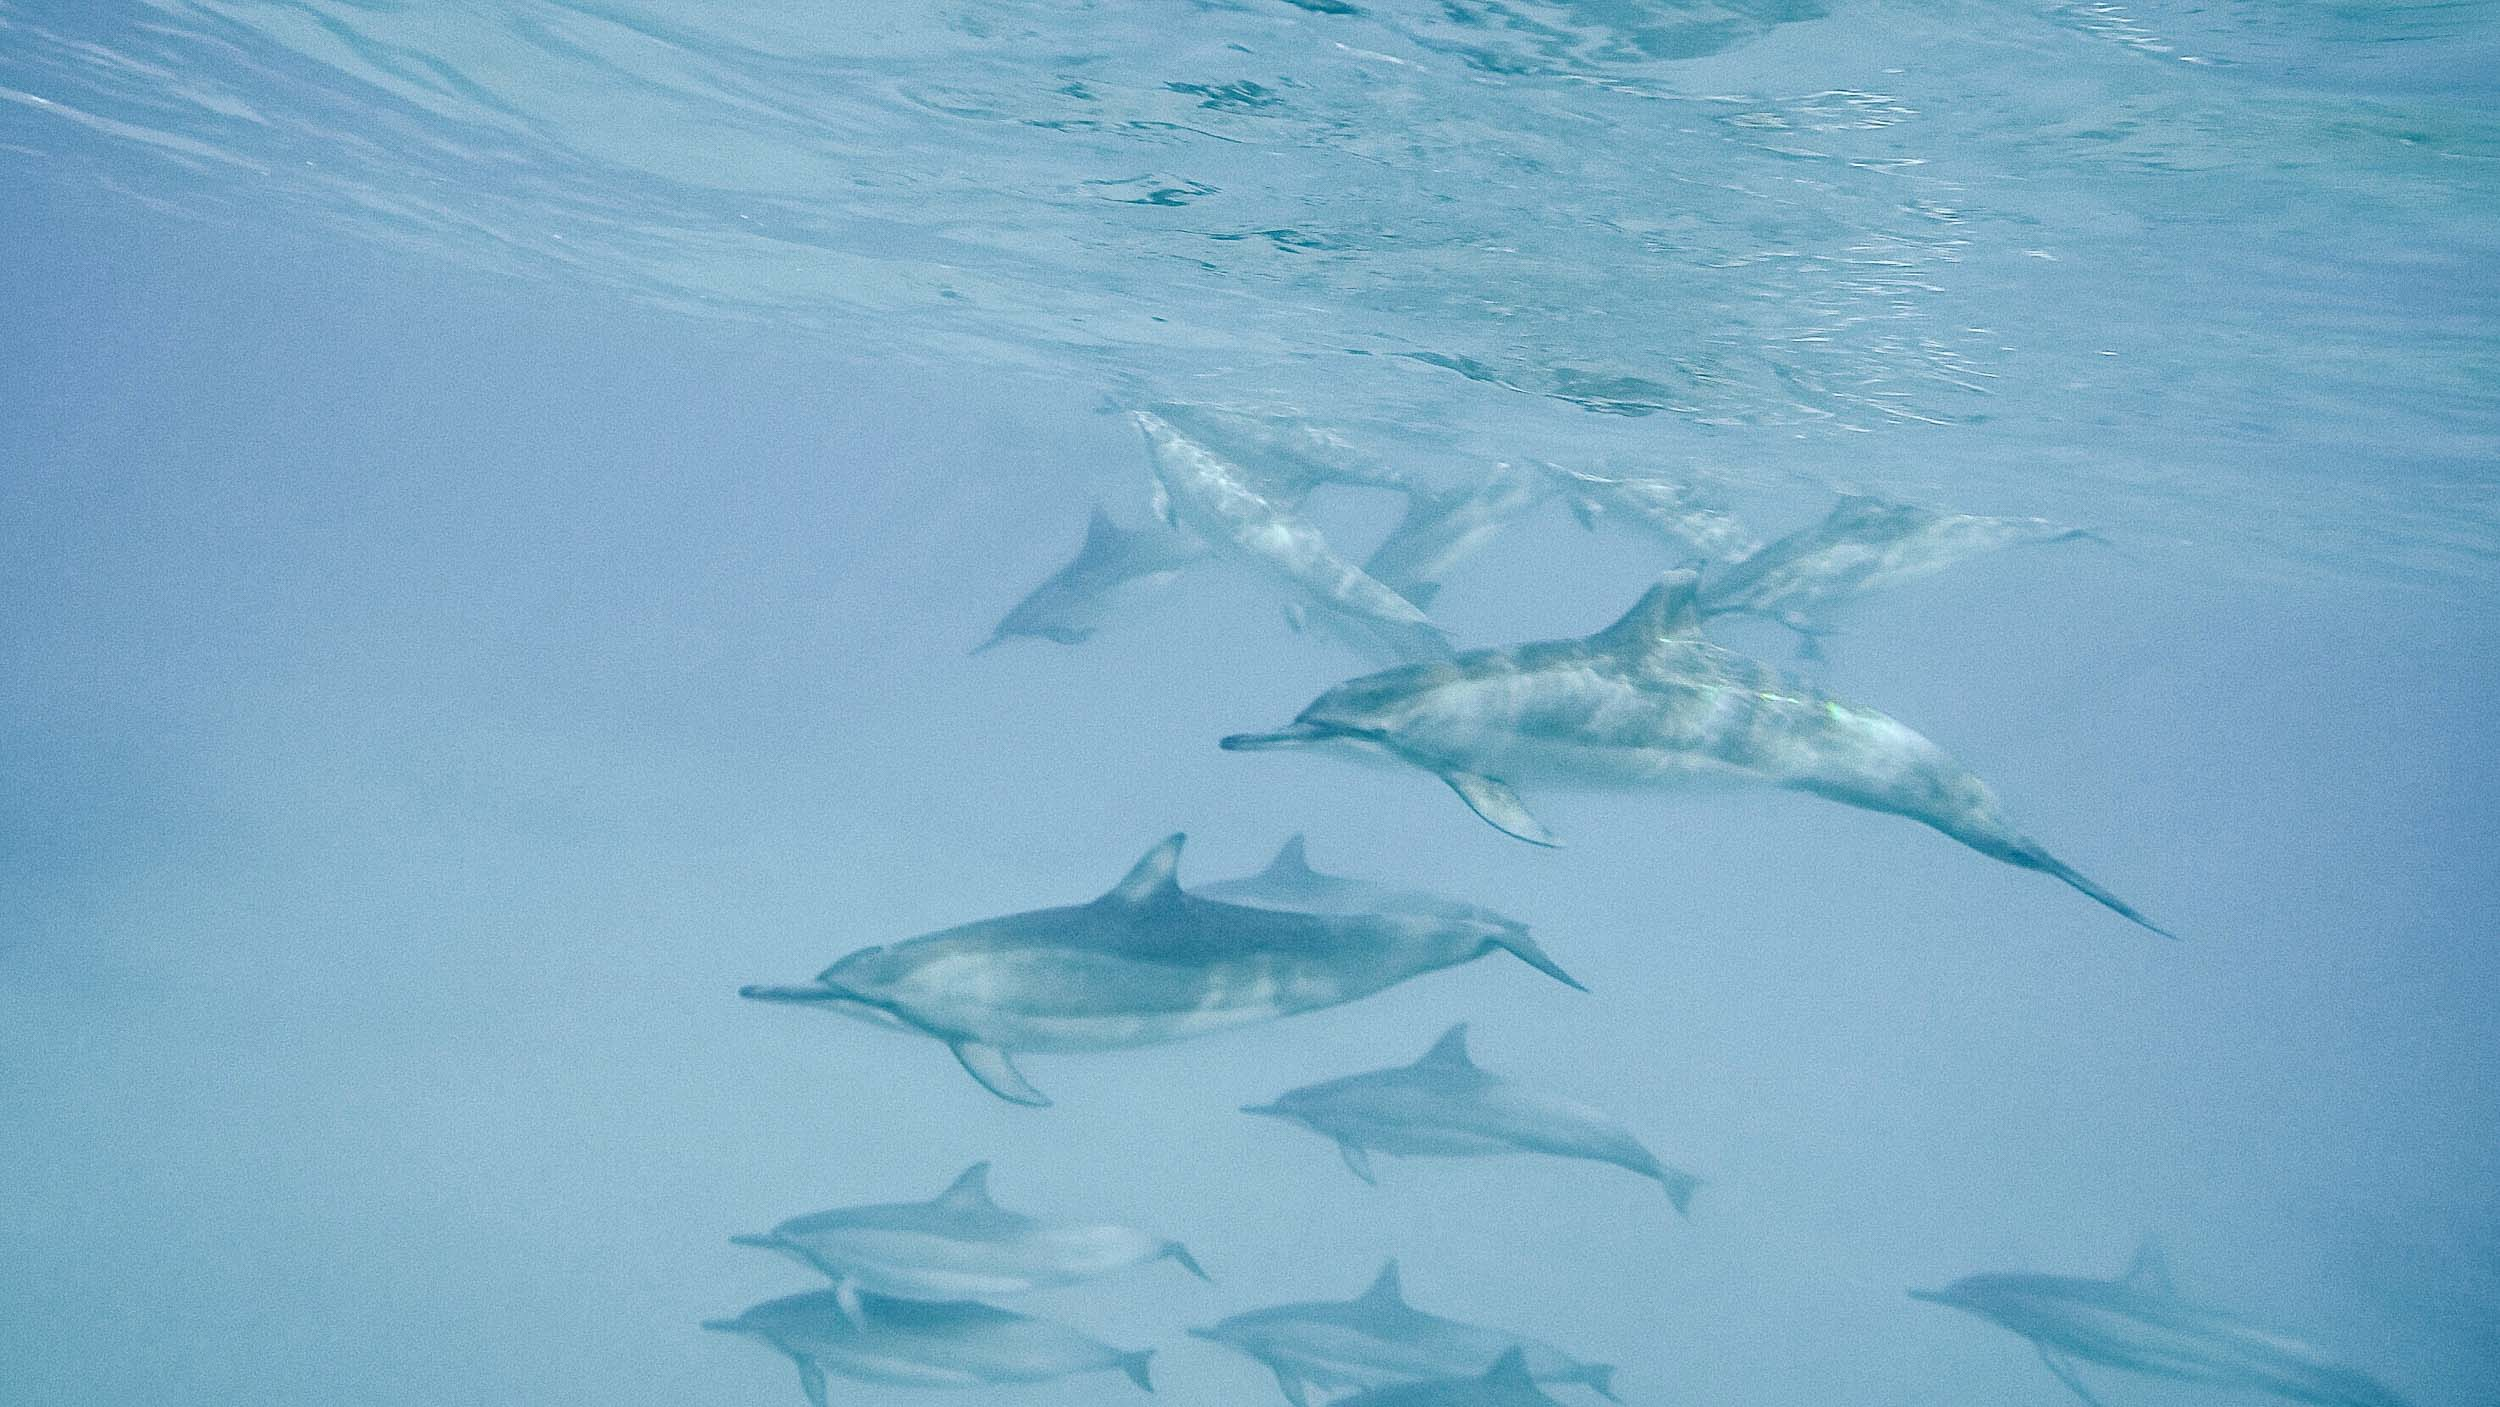 Some dolphins we found while snorkeling in Waianae in Oahu, Hawaii with Dolphin Excursions